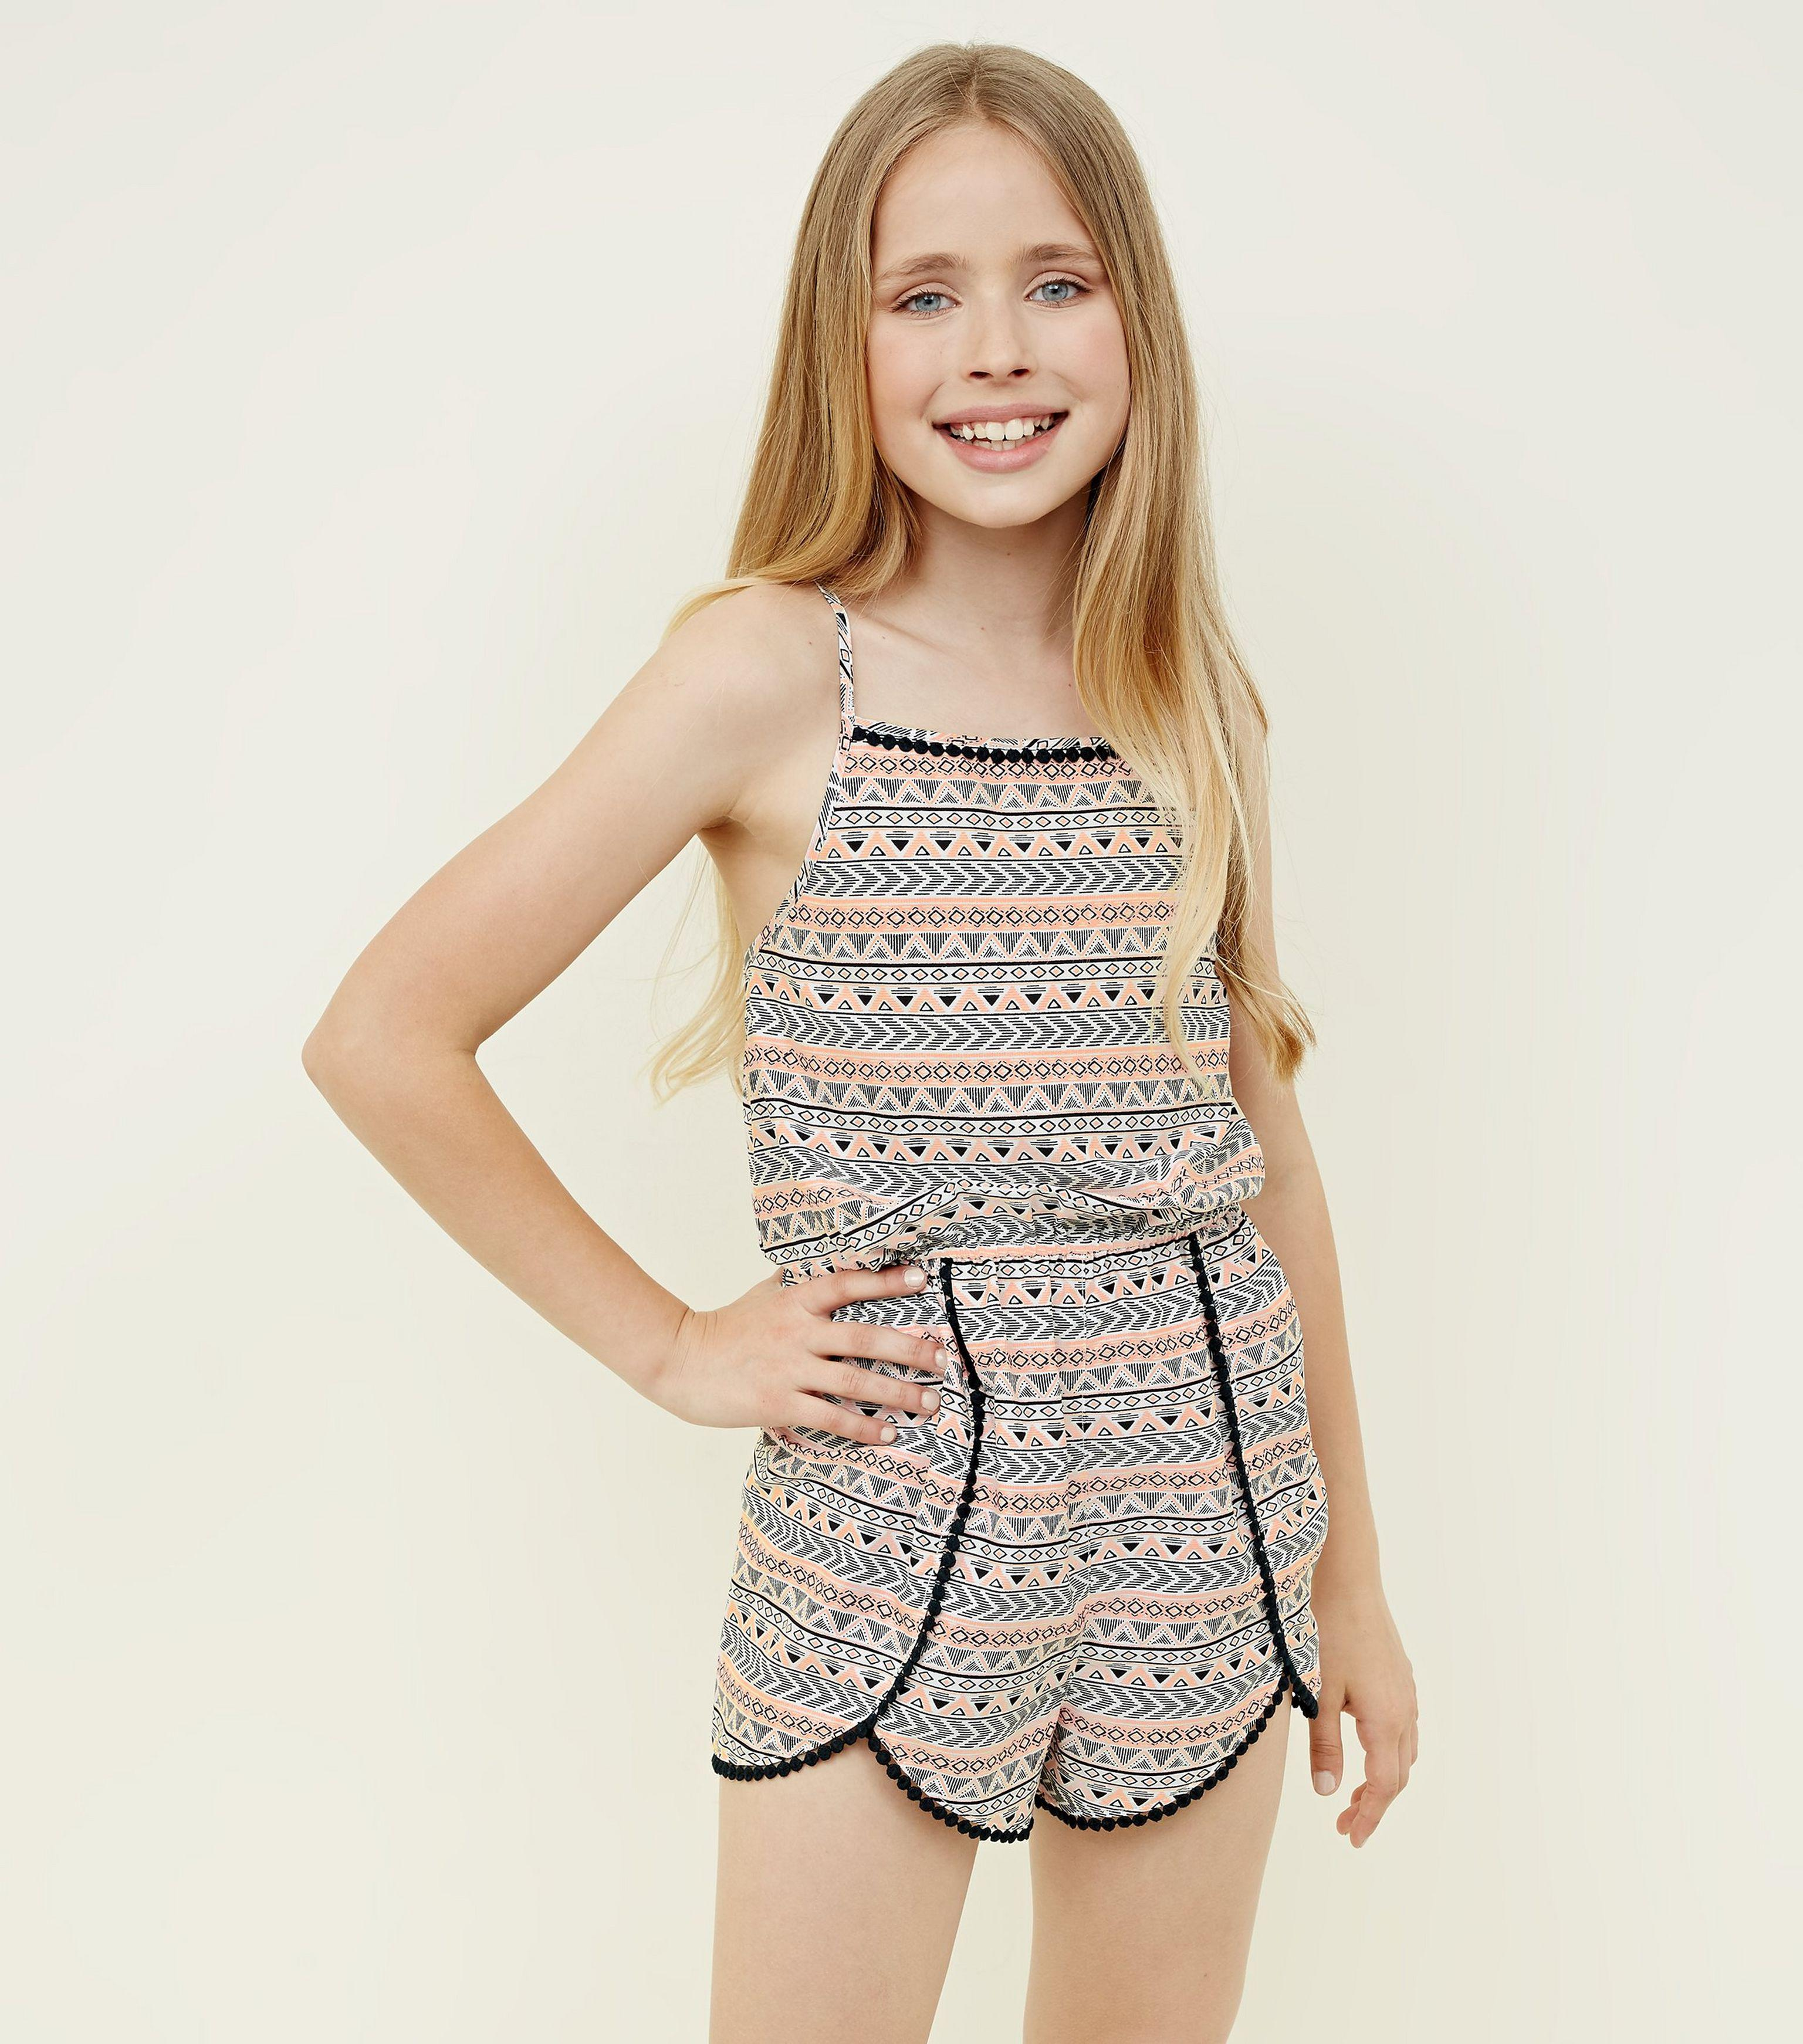 73082cc406a New Look Girls Black Aztec Print Beach Playsuit in Black - Lyst